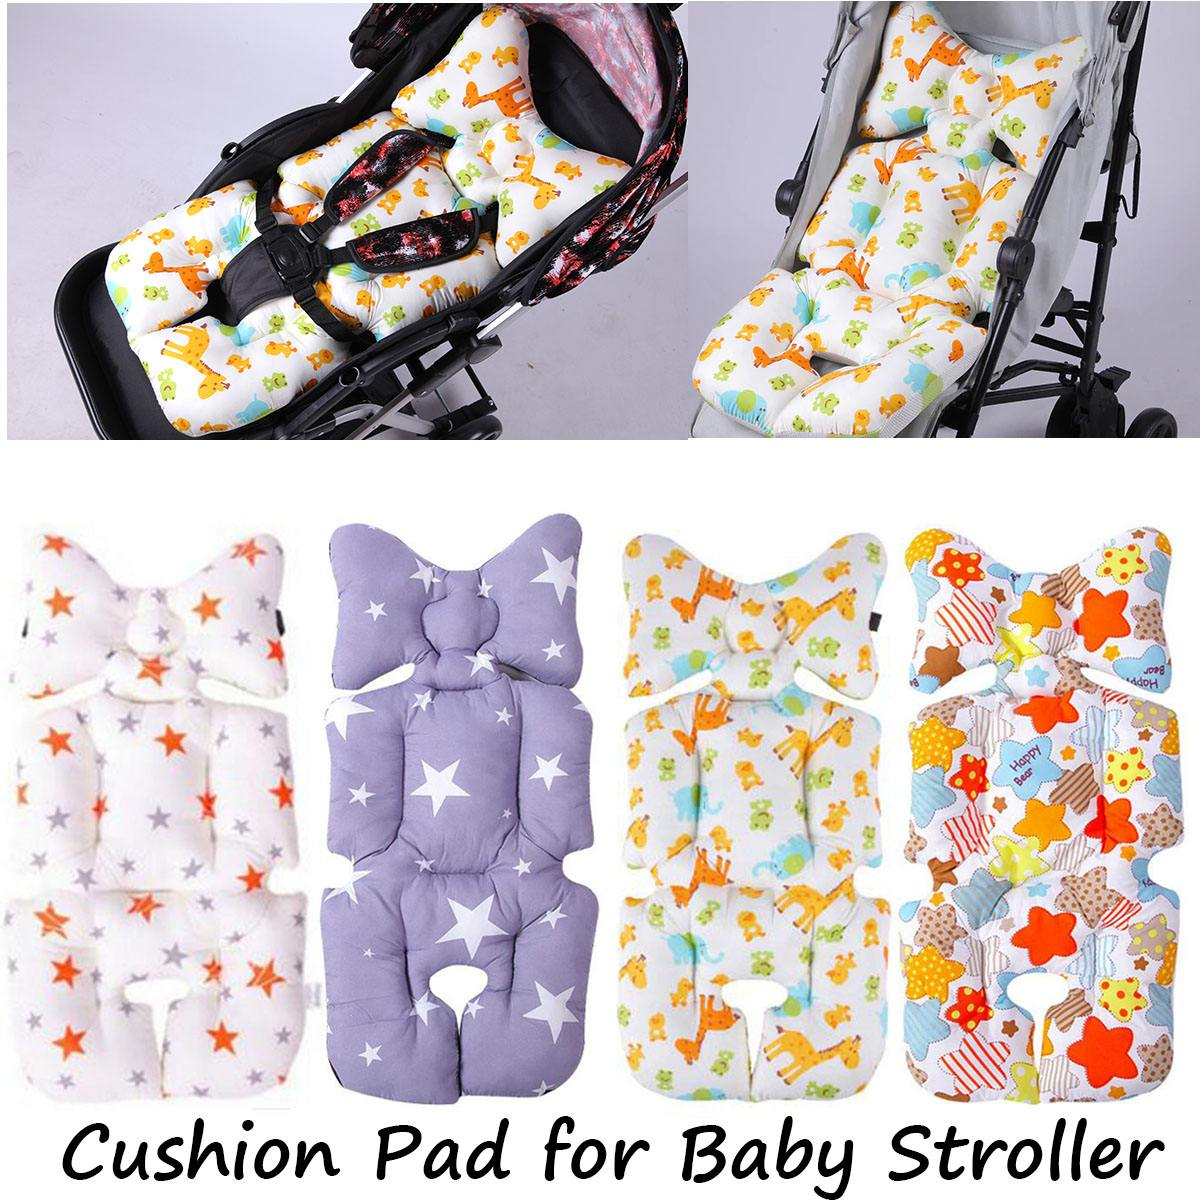 Mother & Kids Baby Stroller Cotton Cushion Seat Cover Mat Breathable Soft Car Pad Pushchair Urine Pad Liner Cartoon Star Mattress Baby Cart